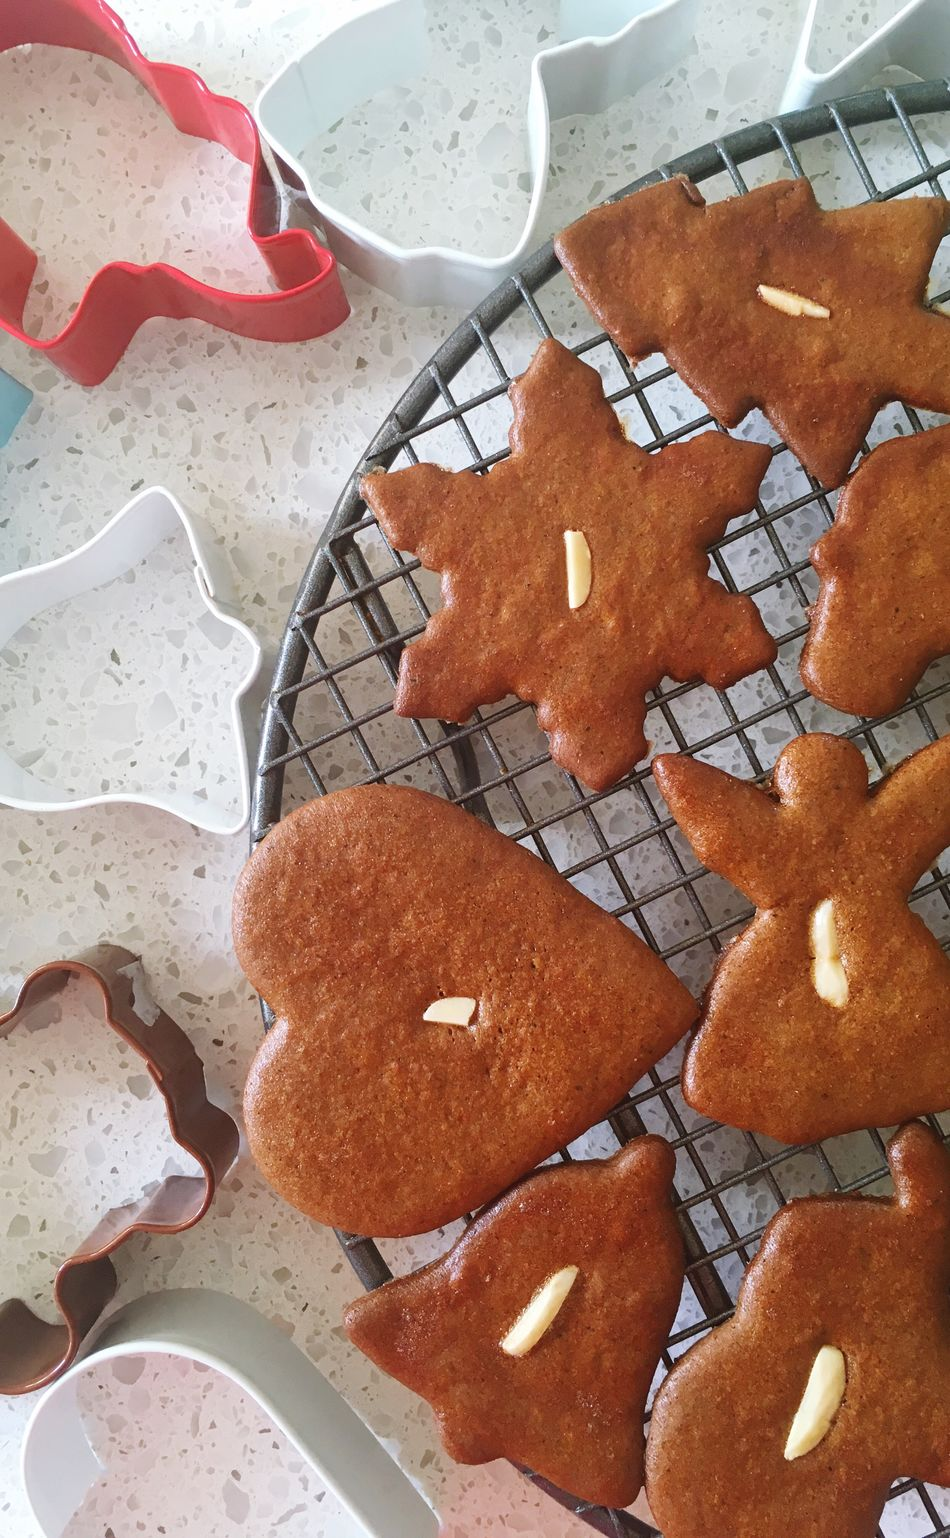 High Angle View Food And Drink Red Sweet Food Close-up No People Freshness Food Temptation Indoors  Day Cookies Piparkukas Gingerbread Cookie Cutters Gingerbread Cookie Christmas Baking Biscuits Pastry Cutter Cookie